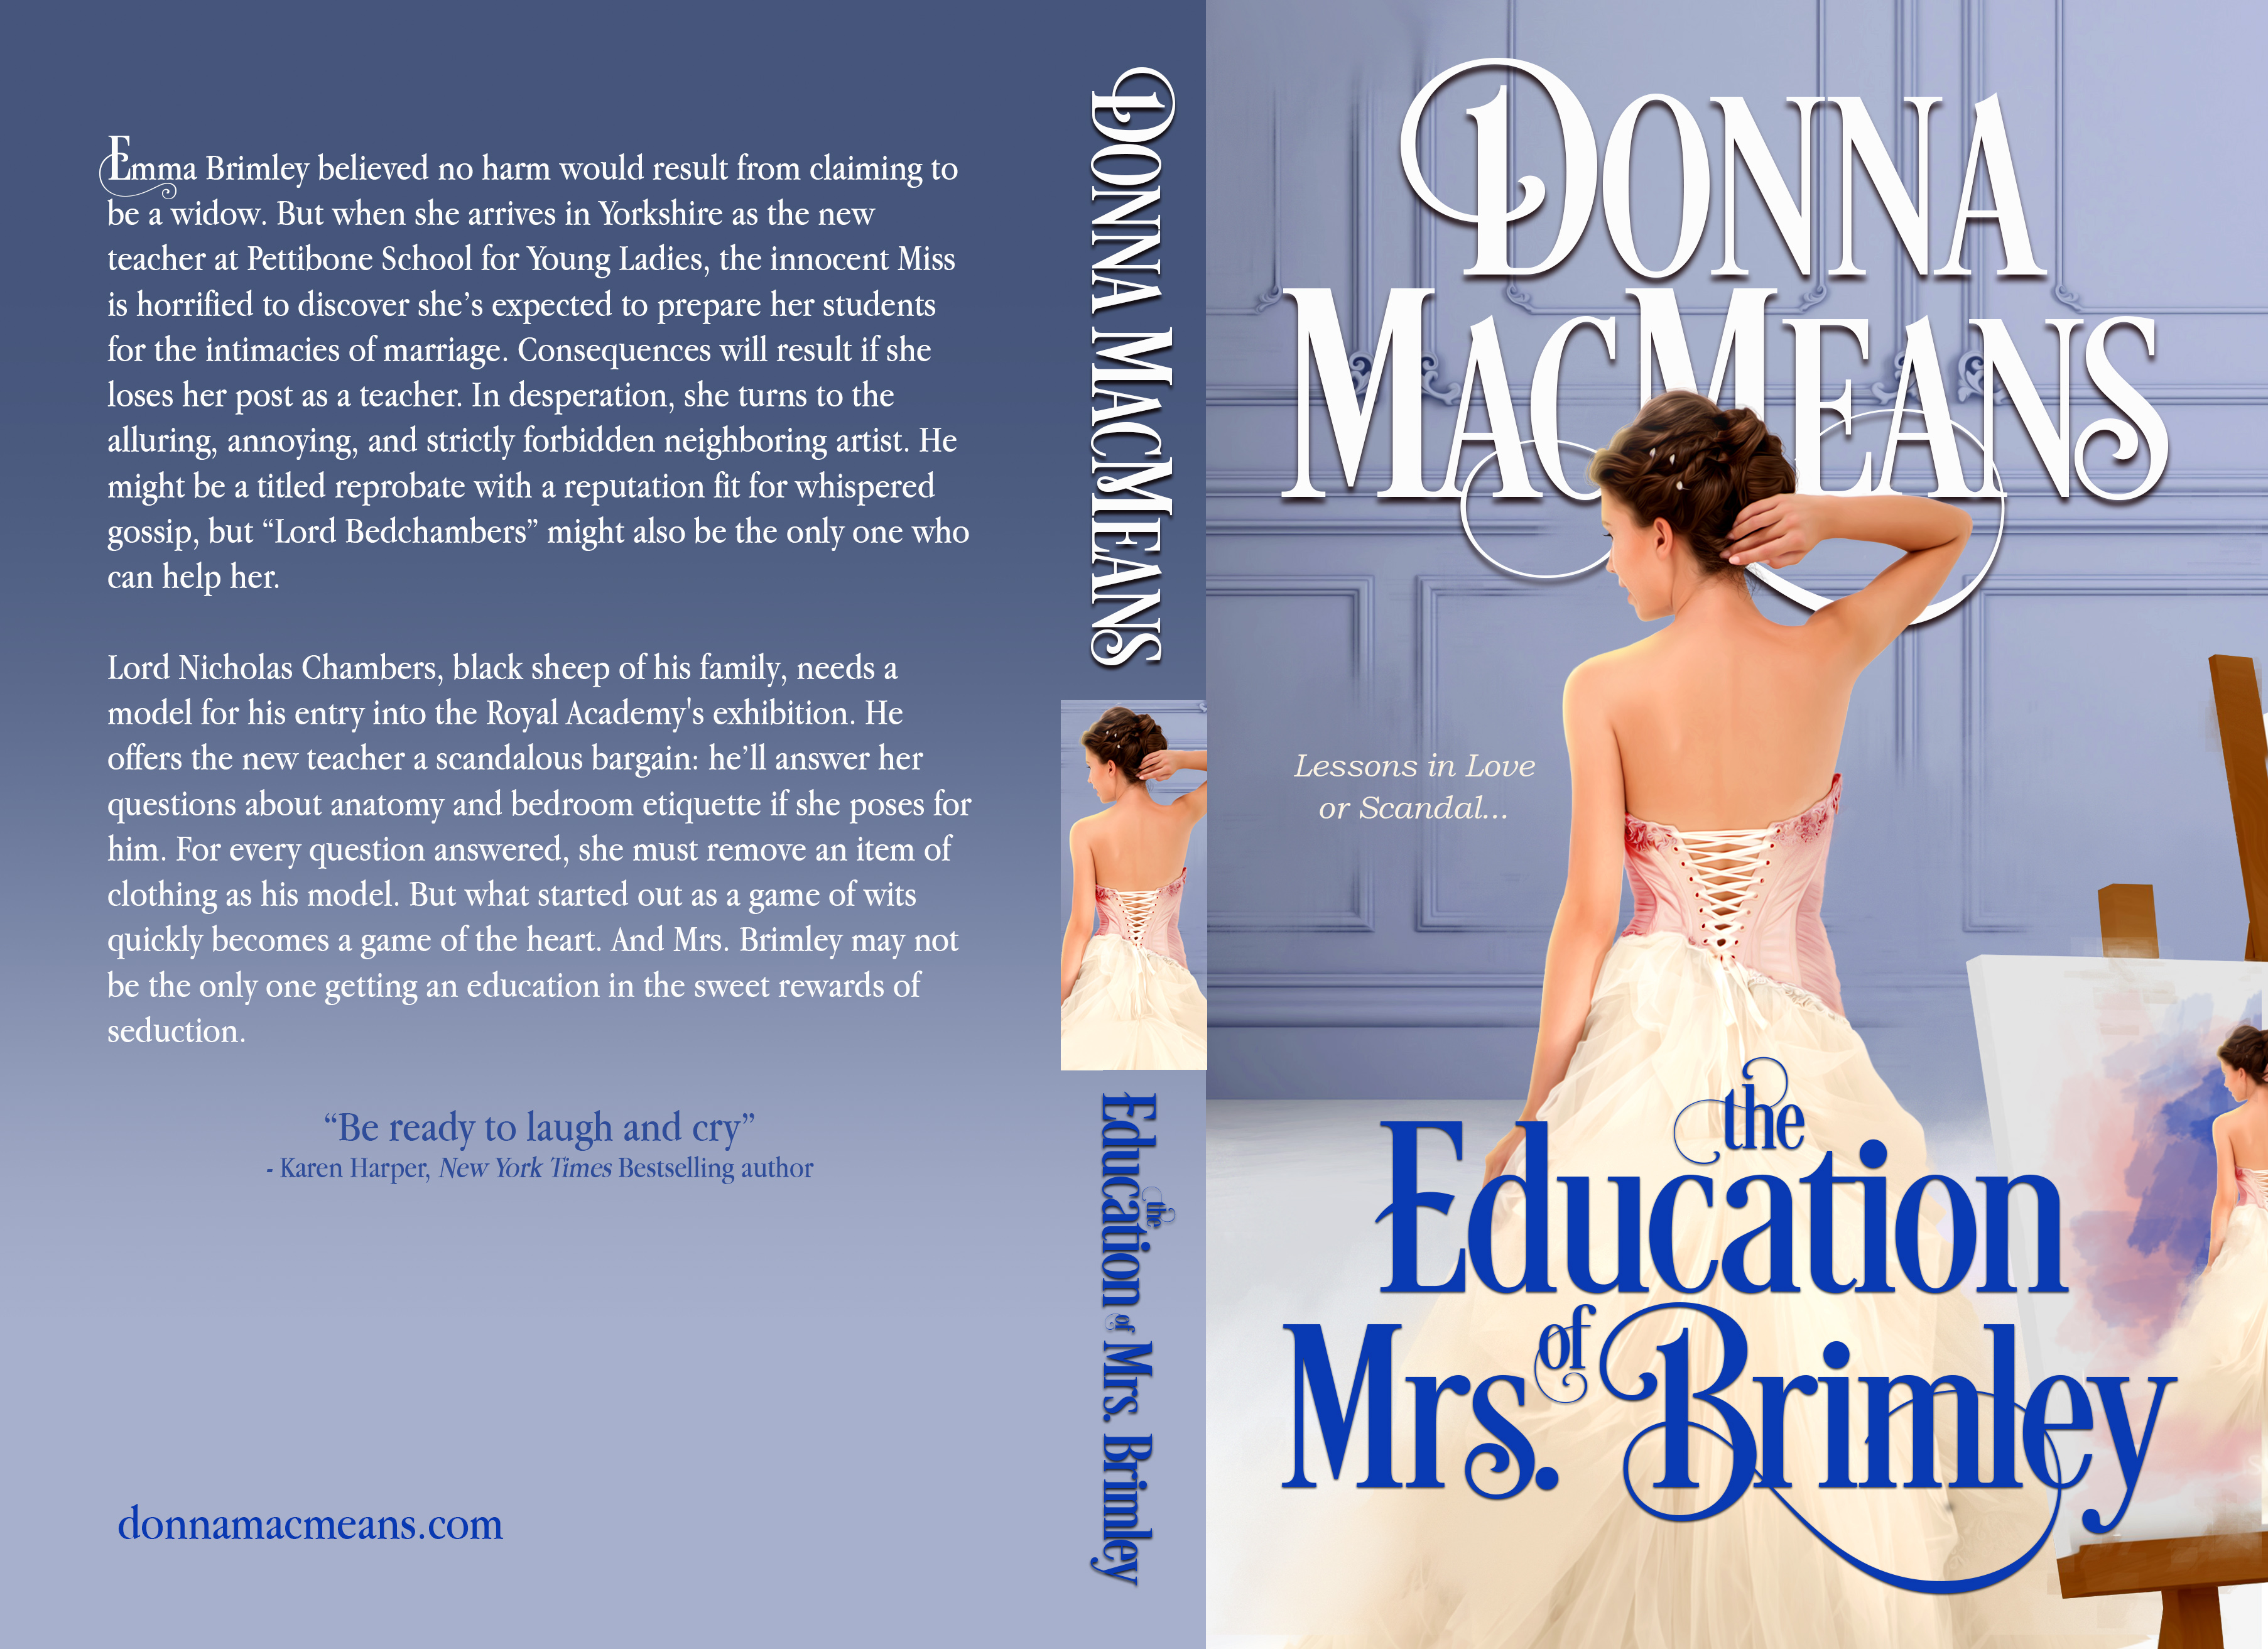 The Education of Mrs. Brimley 5_5 x 8_5 at 342 pages